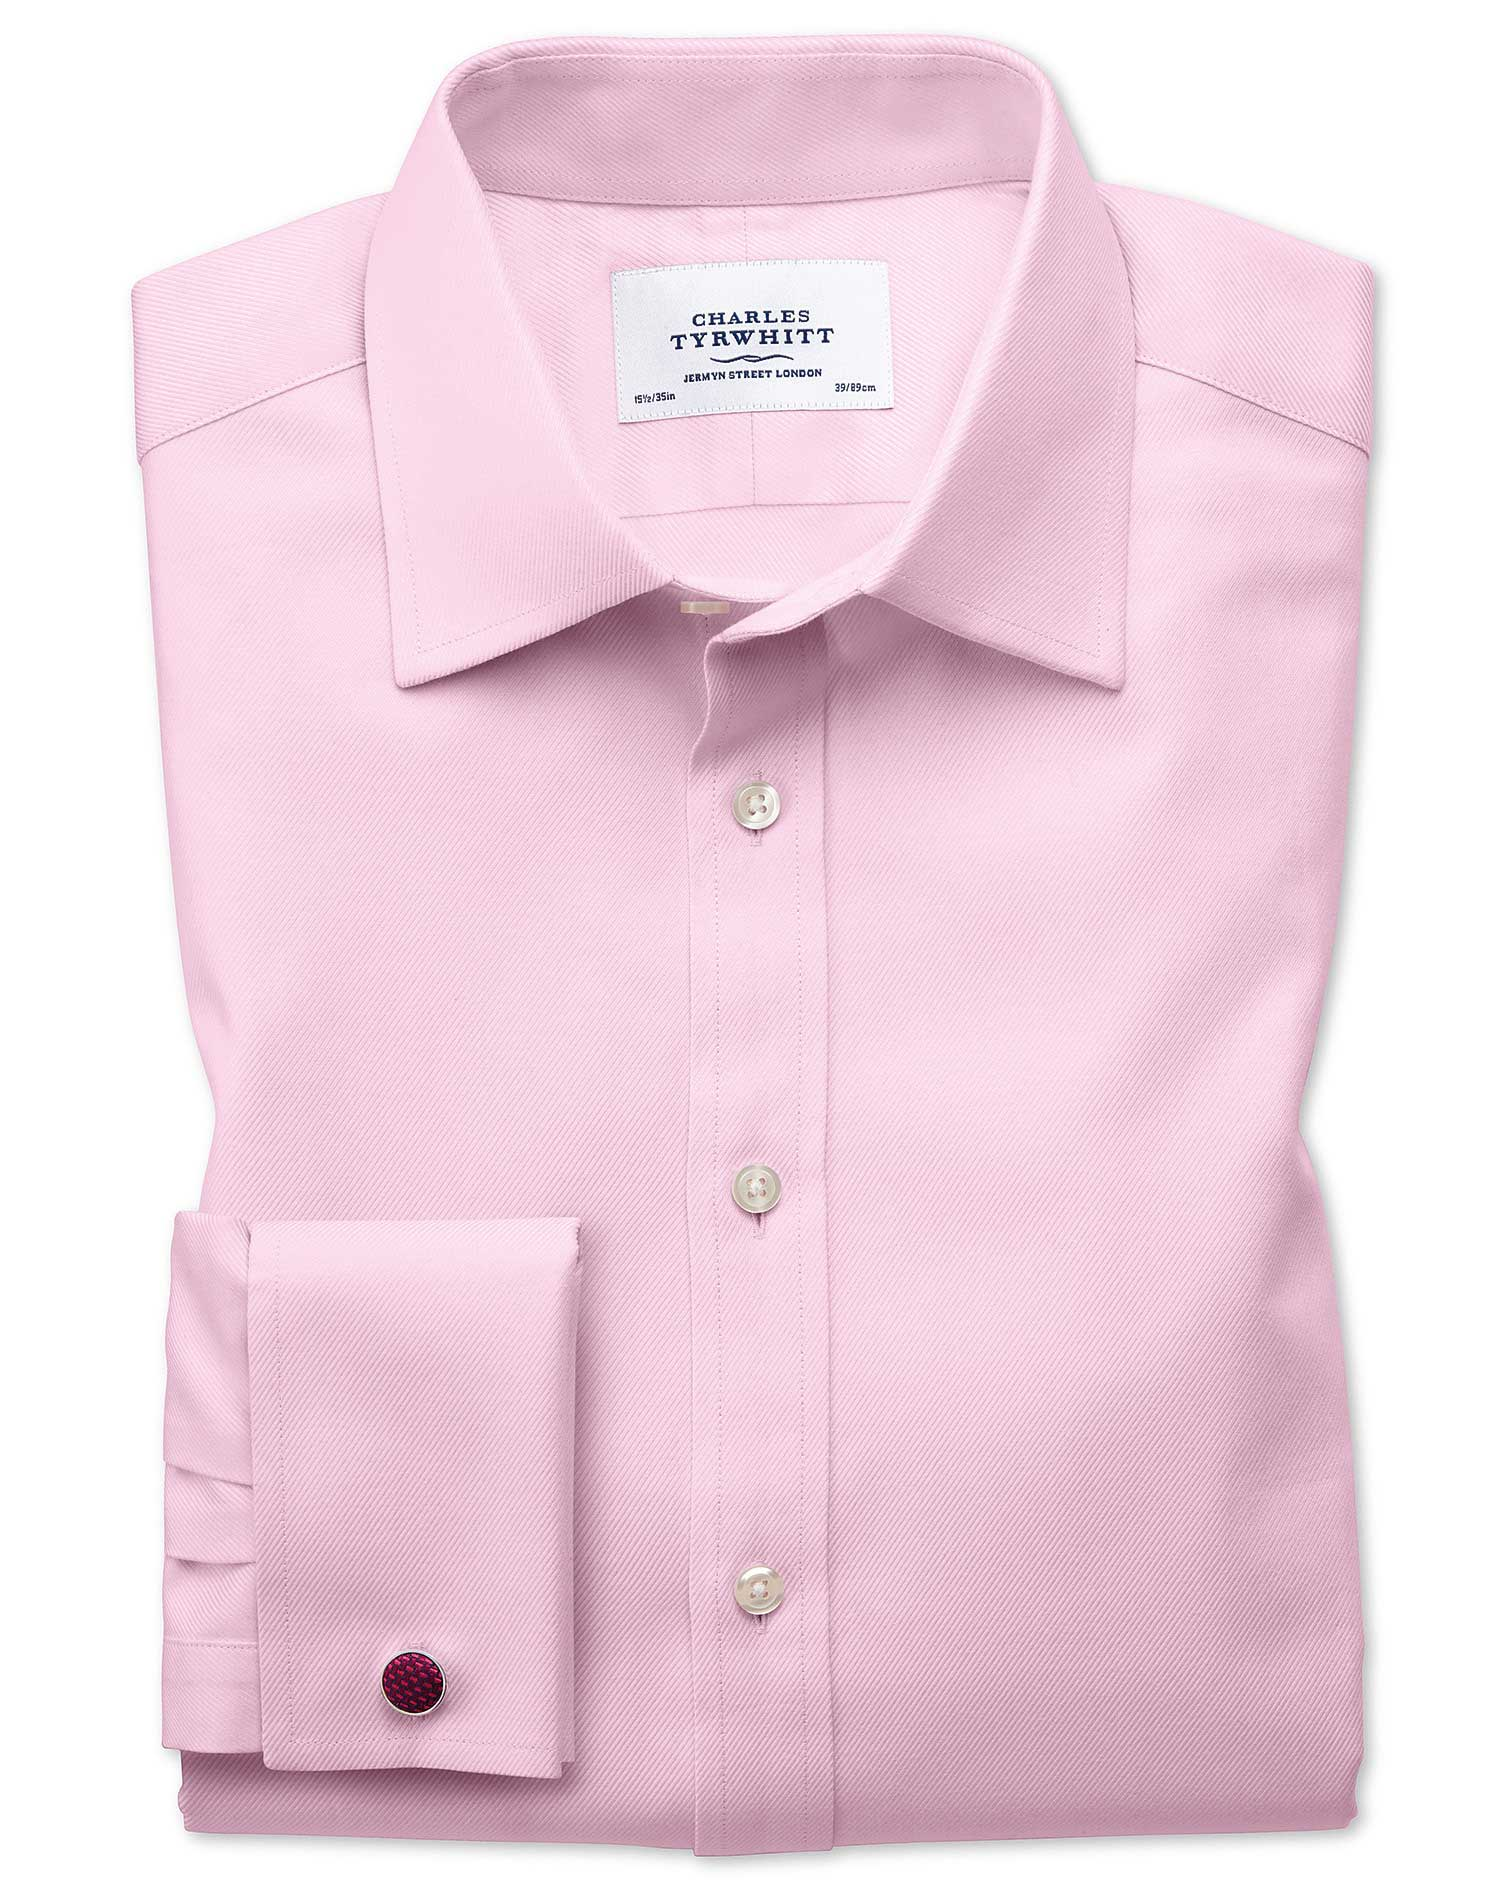 Classic Fit Egyptian Cotton Cavalry Twill Light Pink Formal Shirt Single Cuff Size 16/33 by Charles